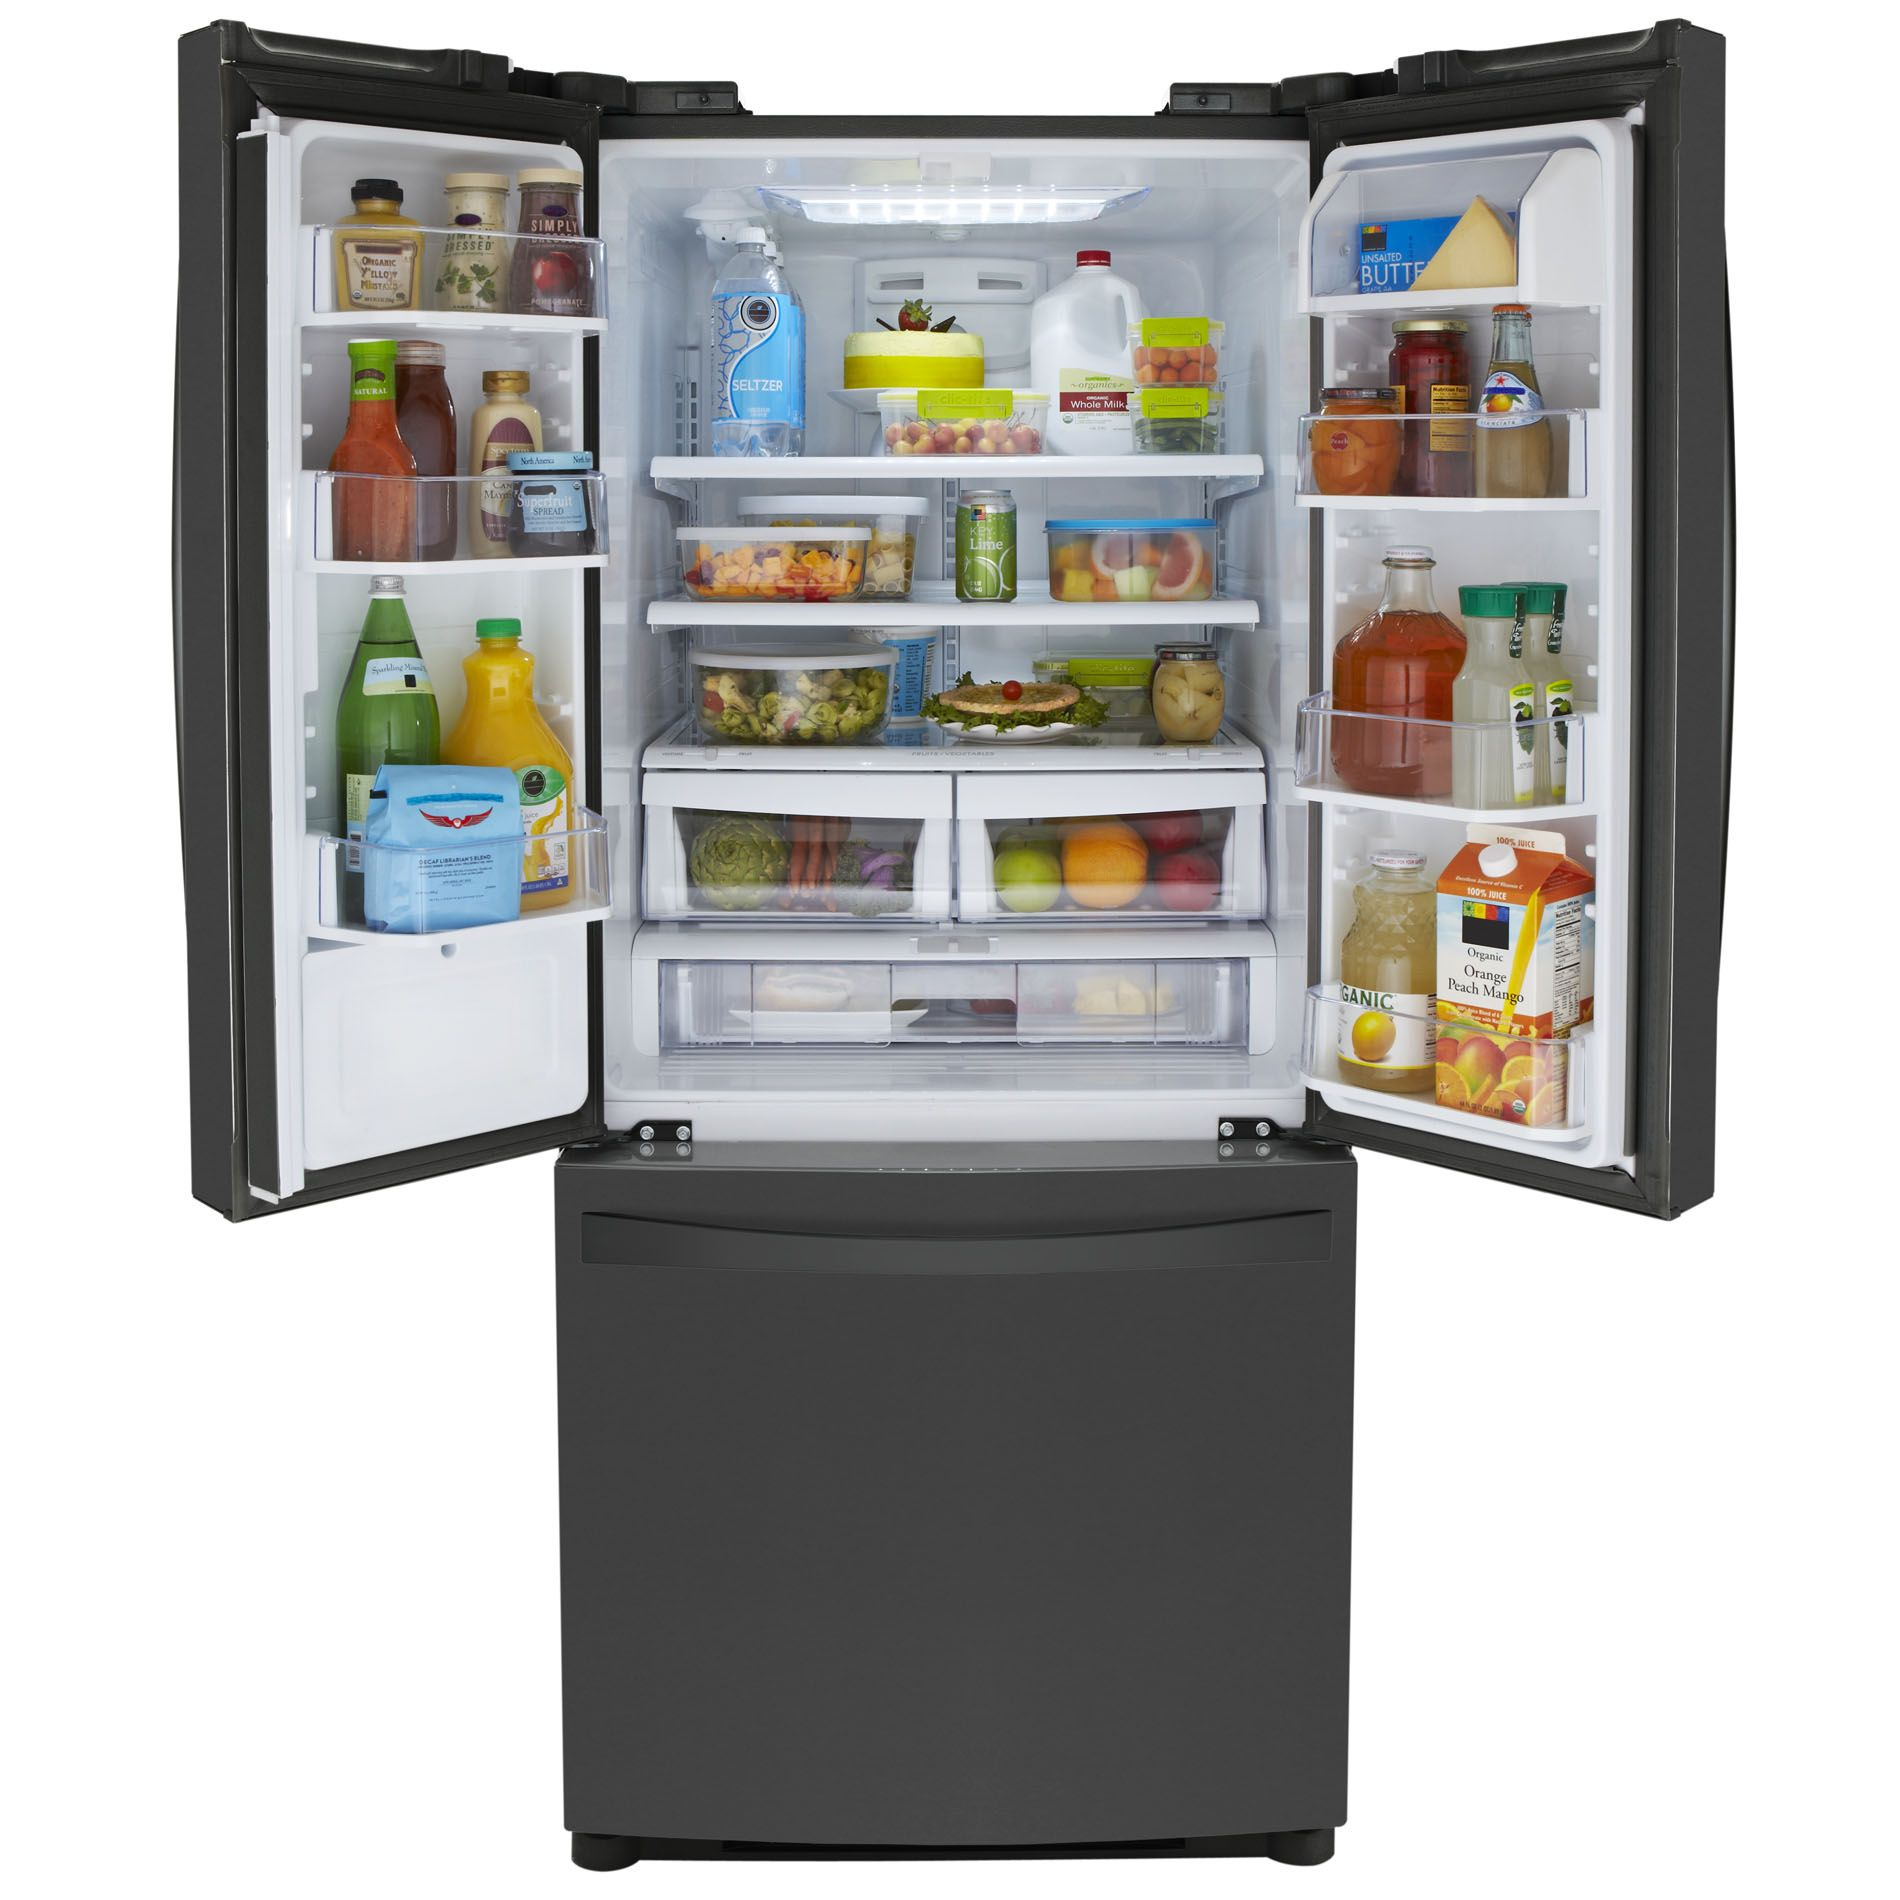 Kenmore Elite 20 cu. ft. French-Door Bottom-Freezer Refrigerator - Black